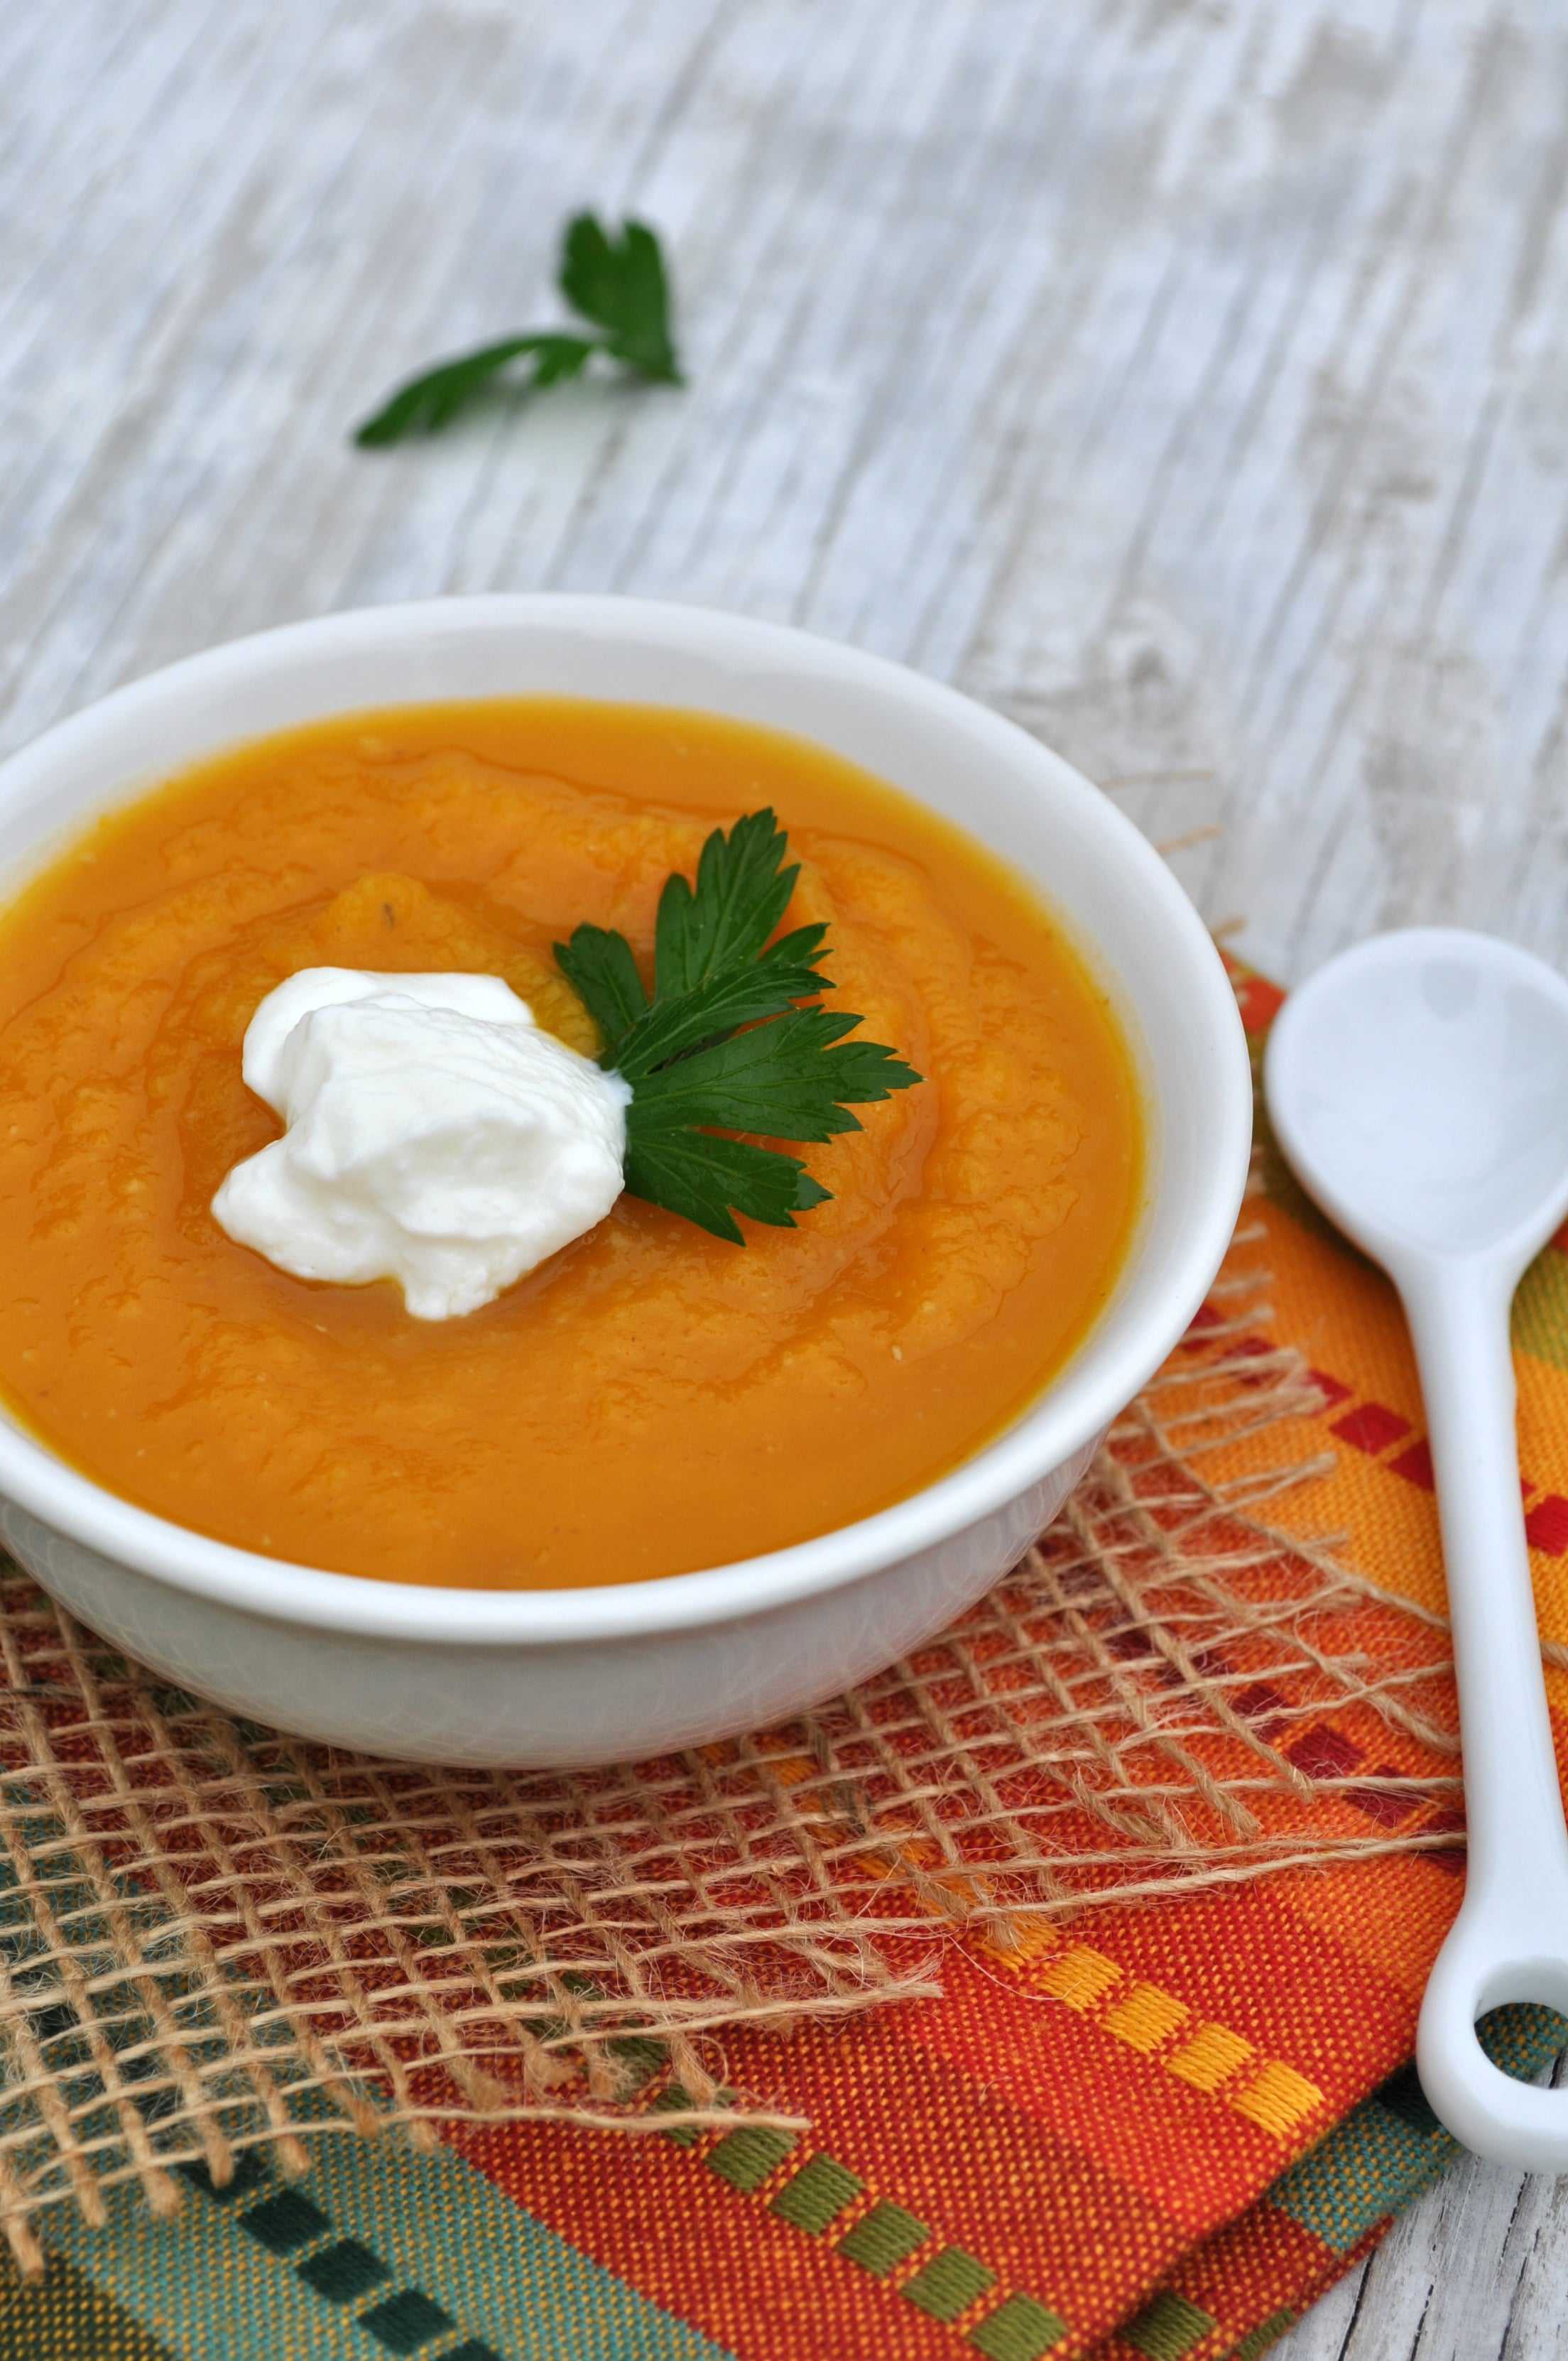 The Best Roasted Butternut Squash Soup - The Seasoned Mom